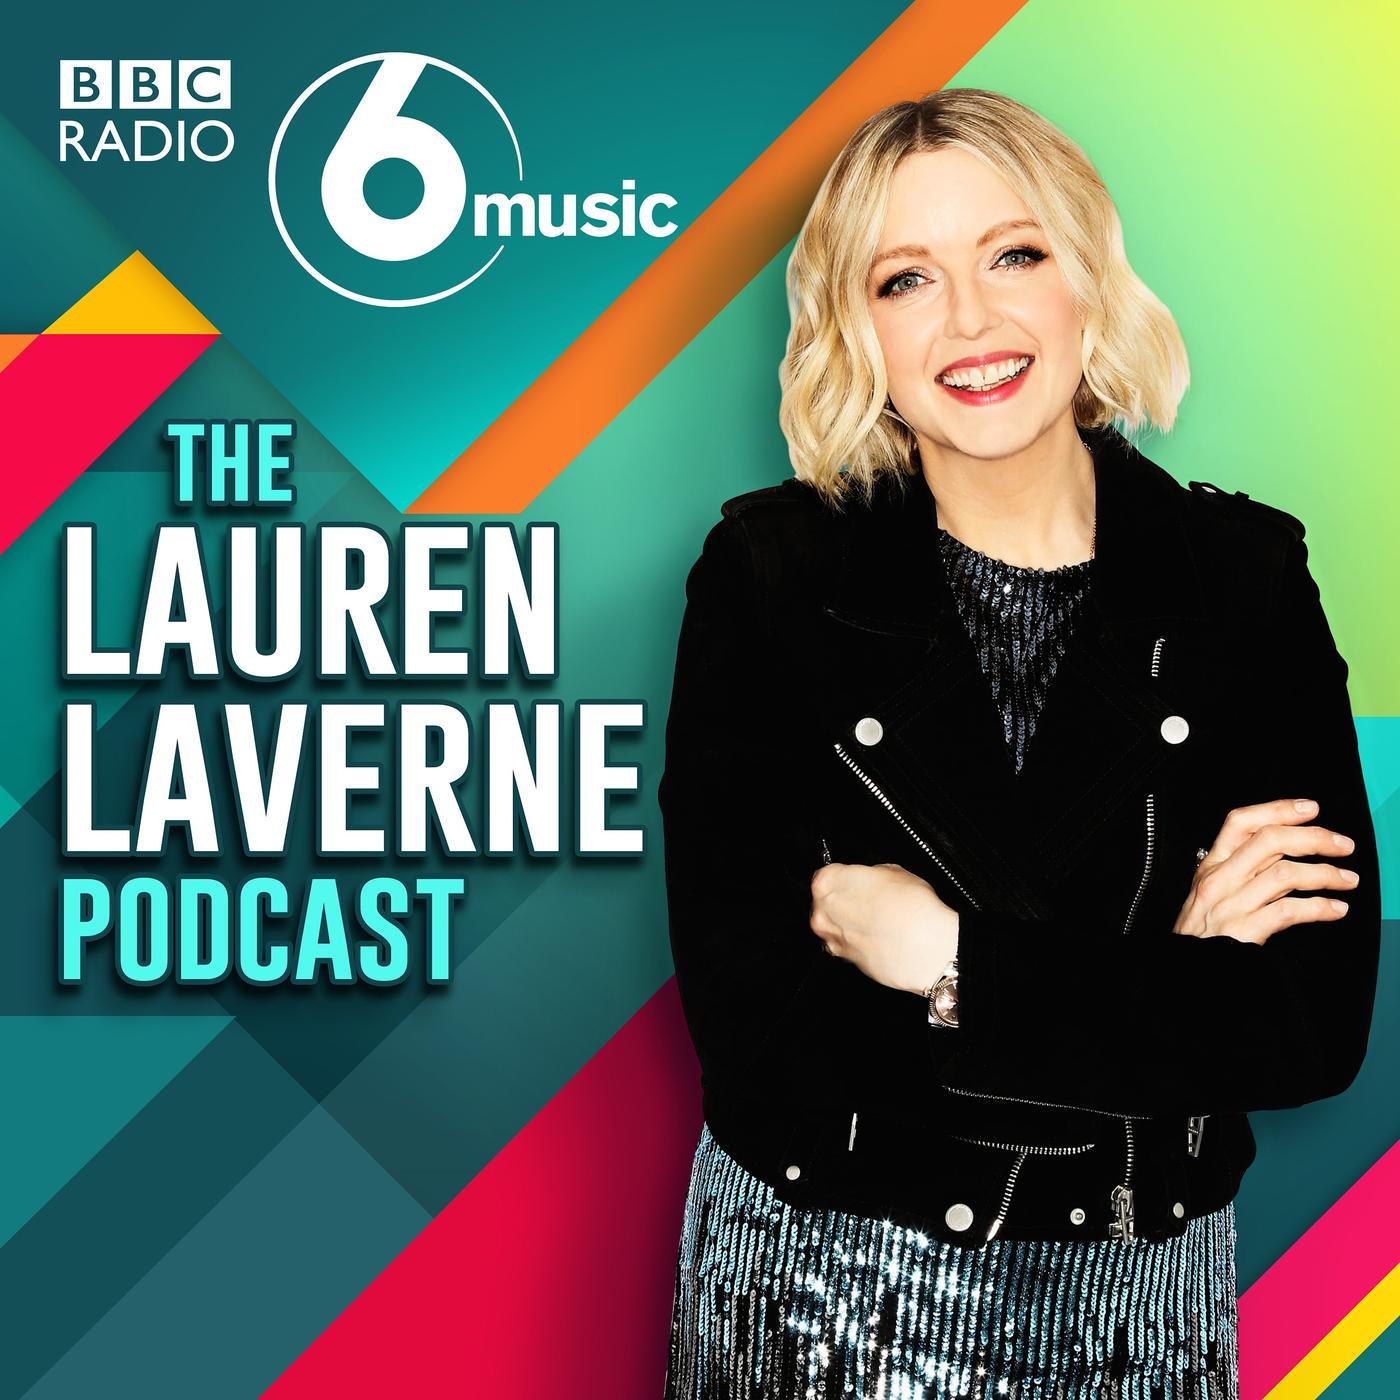 d28d0399 The Lauren Laverne Podcast - BBC Radio 6 Music | Listen Notes